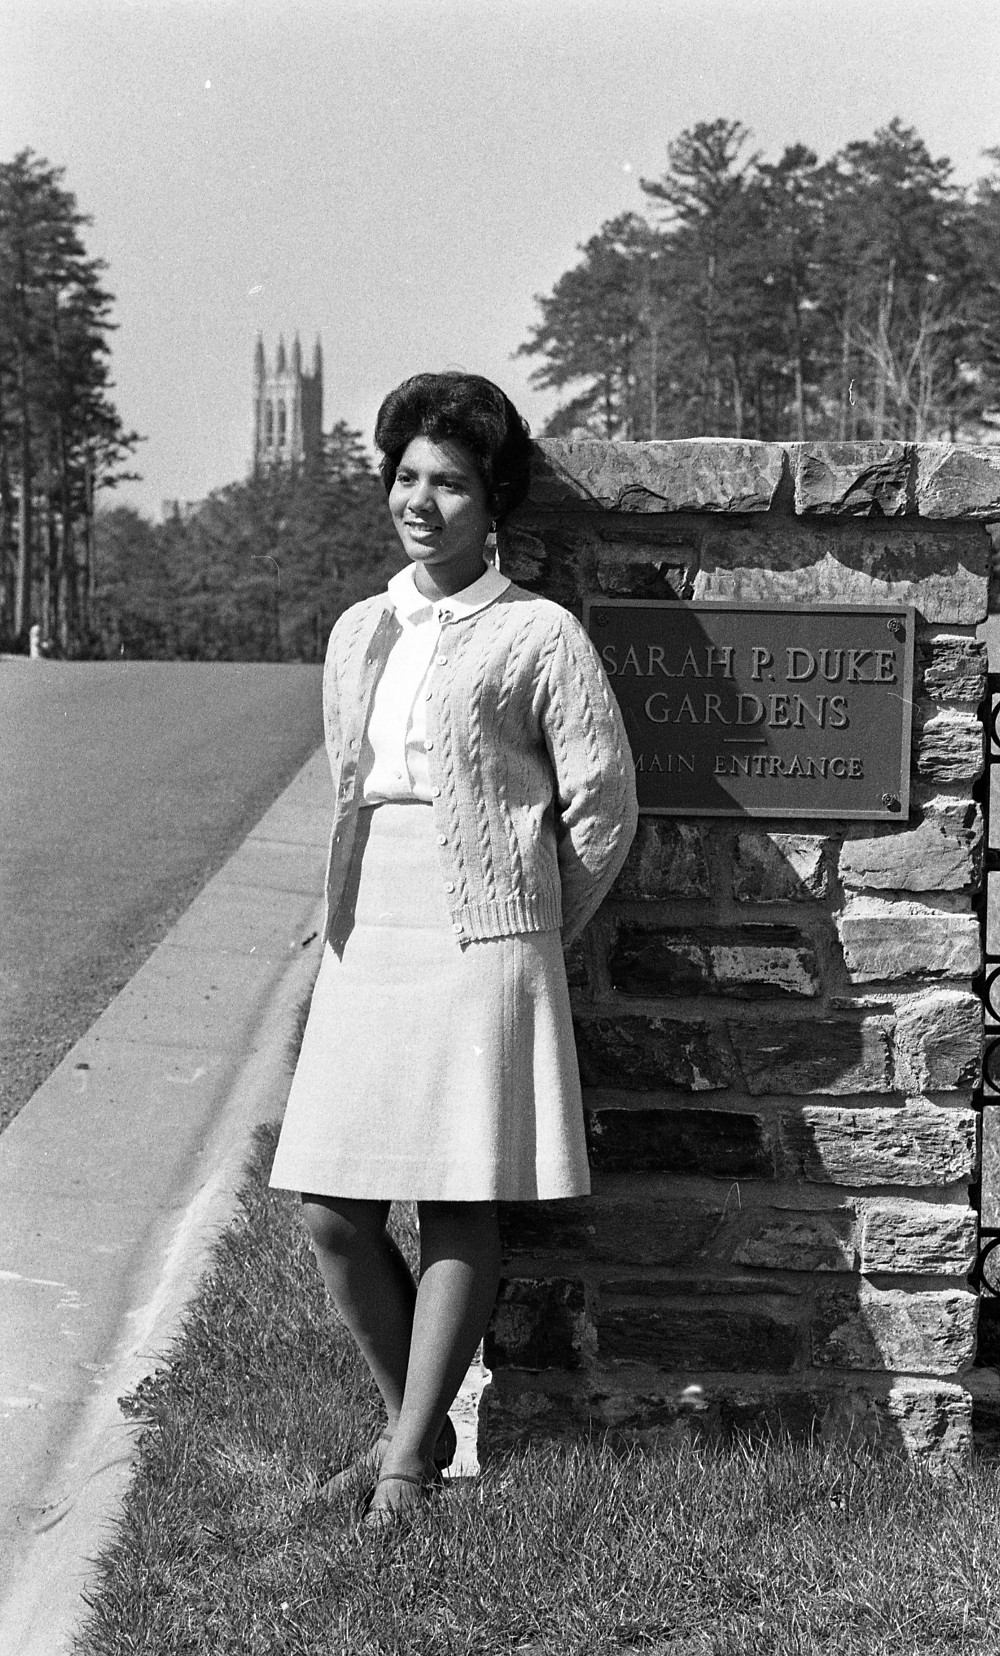 """Wilhelmina Reuben, May Queen 1967, leans on a stone column with a plaque that says, """"Sarah P. Duke Gardens, Main Entrance."""""""